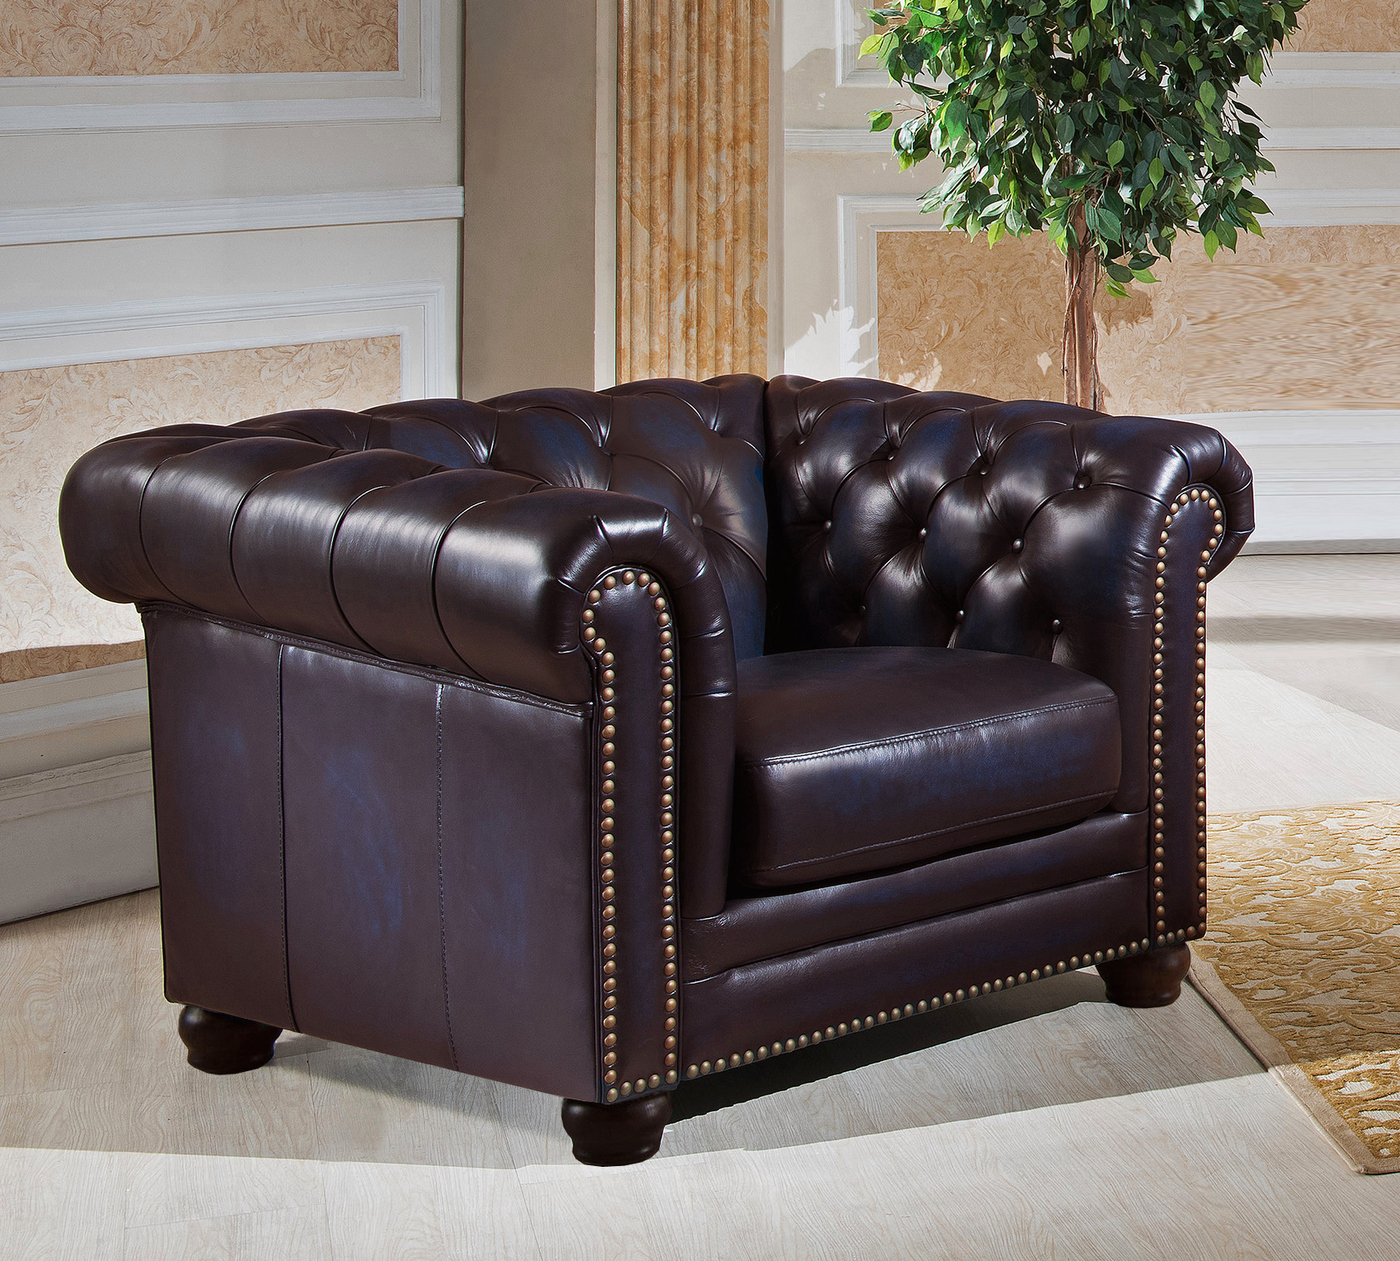 Leather Chesterfield Chair Dynasty 100 Genuine Leather Chesterfield Sofa And Two